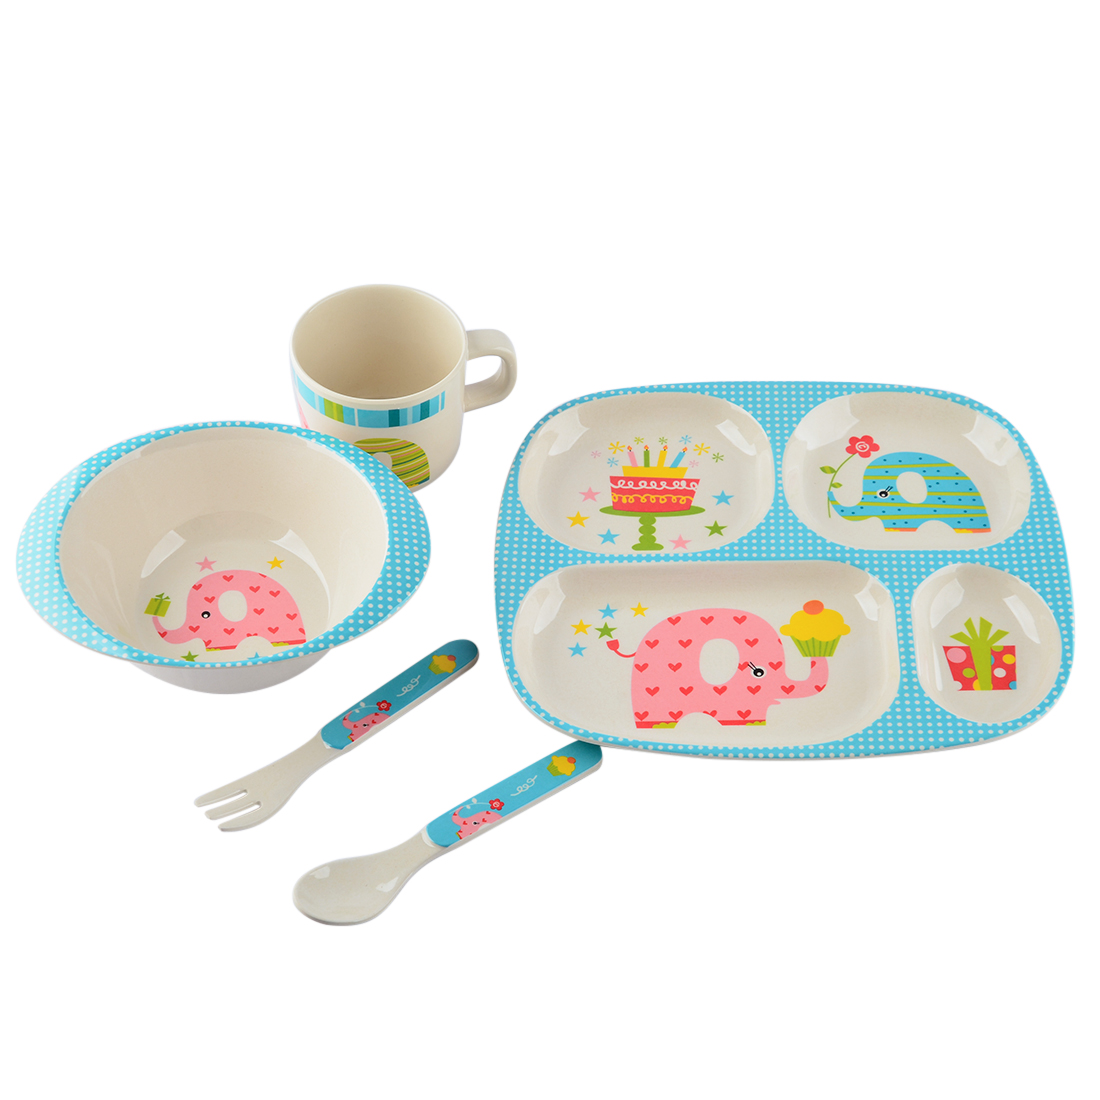 Baby Kids Dinnerware Set Bamboo Fiber Children Meal Tray Set Lovely Cartoon Dish Soup Bowl Cup Spoon Fork... by YONGZHEXINNIC